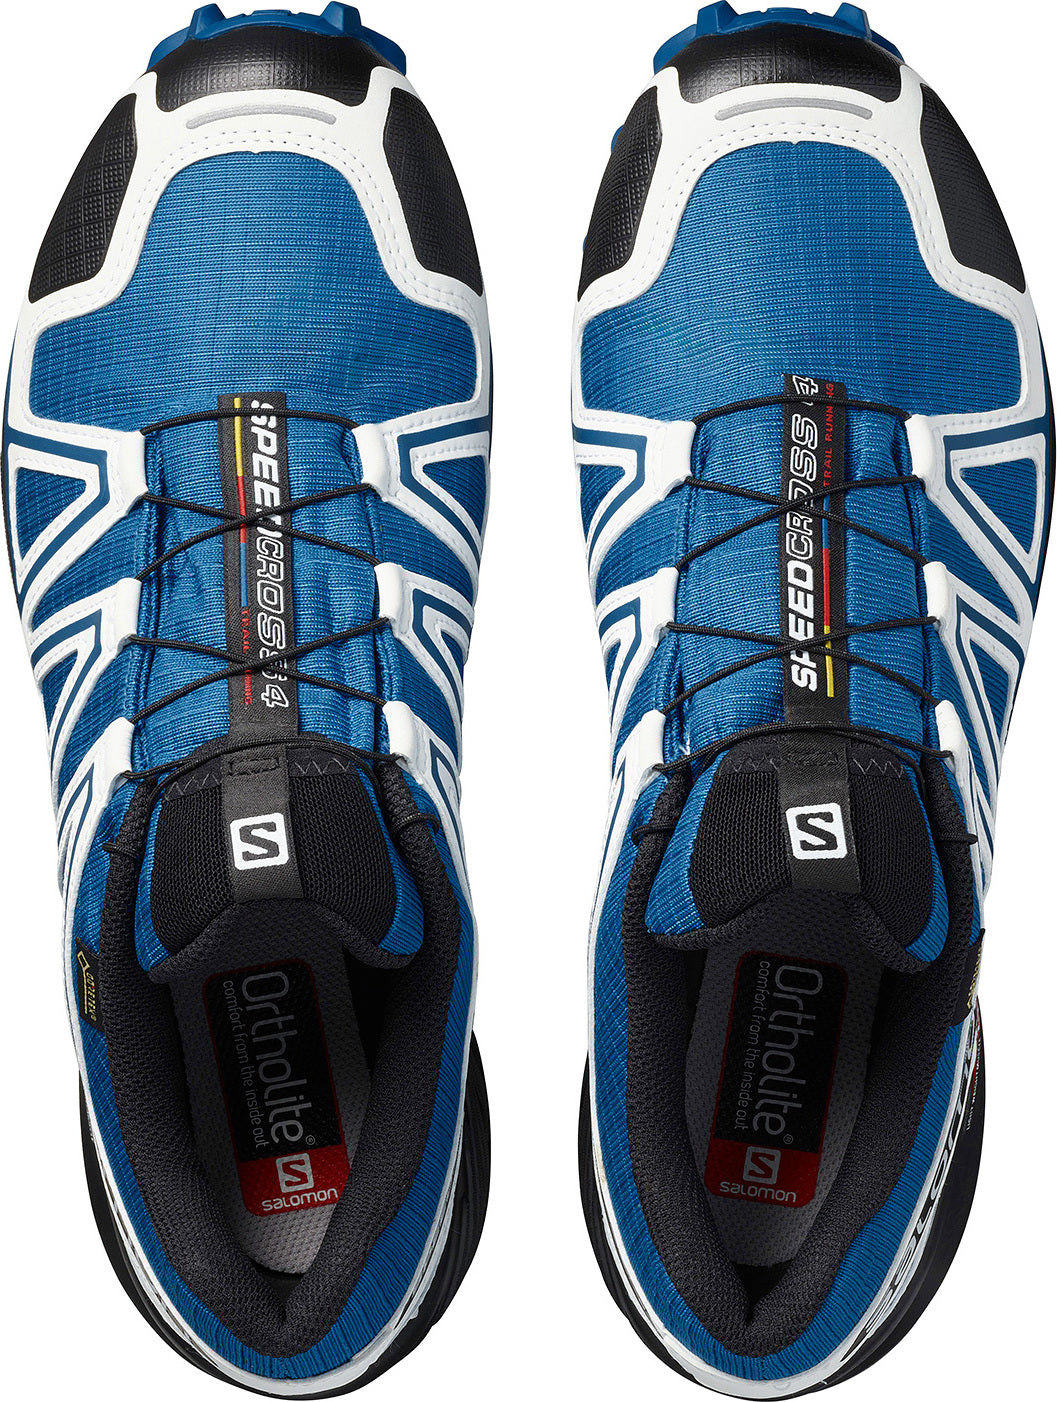 separation shoes f6f3b 07d06 ... Speedcross 4 GTX Trail Running Shoes - Men s thumb